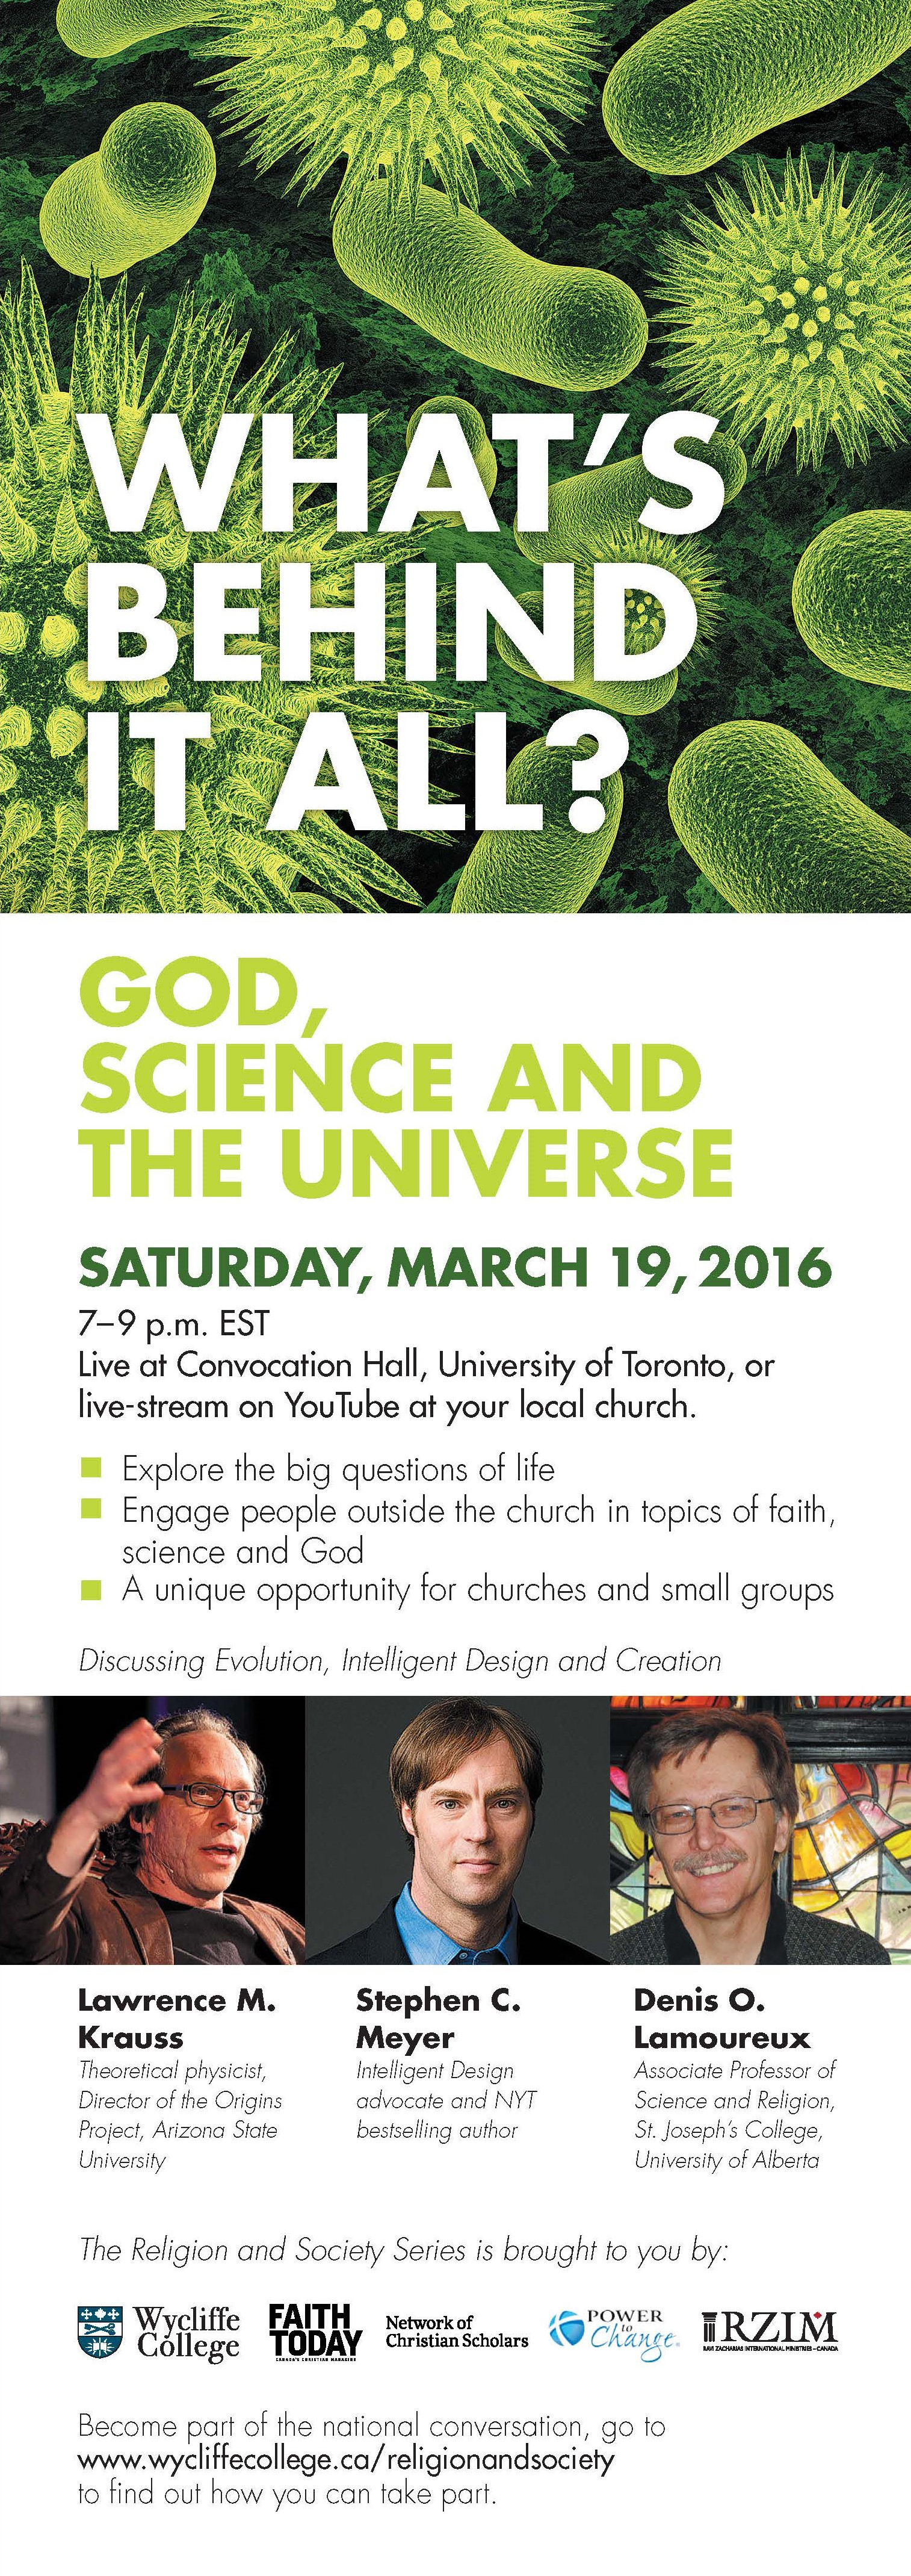 God, Science and the Universe